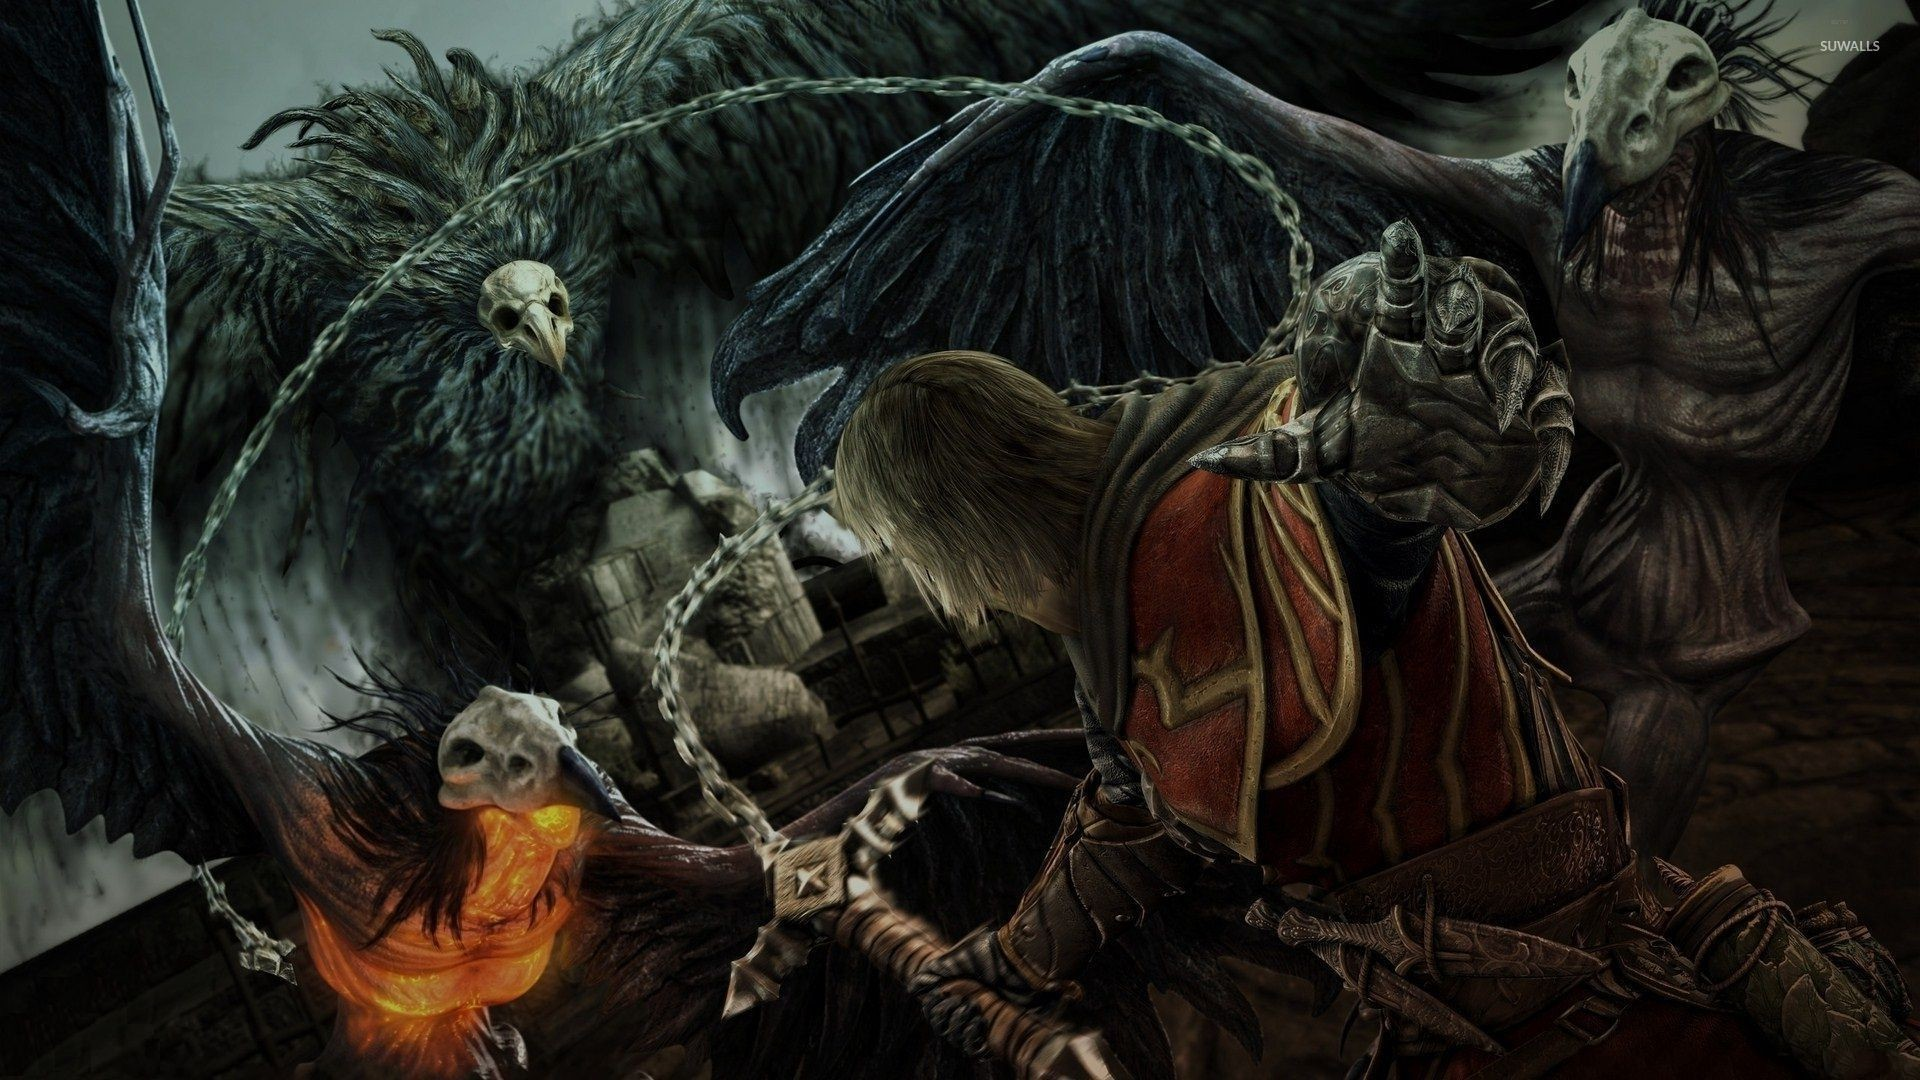 Res: 1920x1080, Weird creatures in Castlevania: Lords of Shadow wallpaper